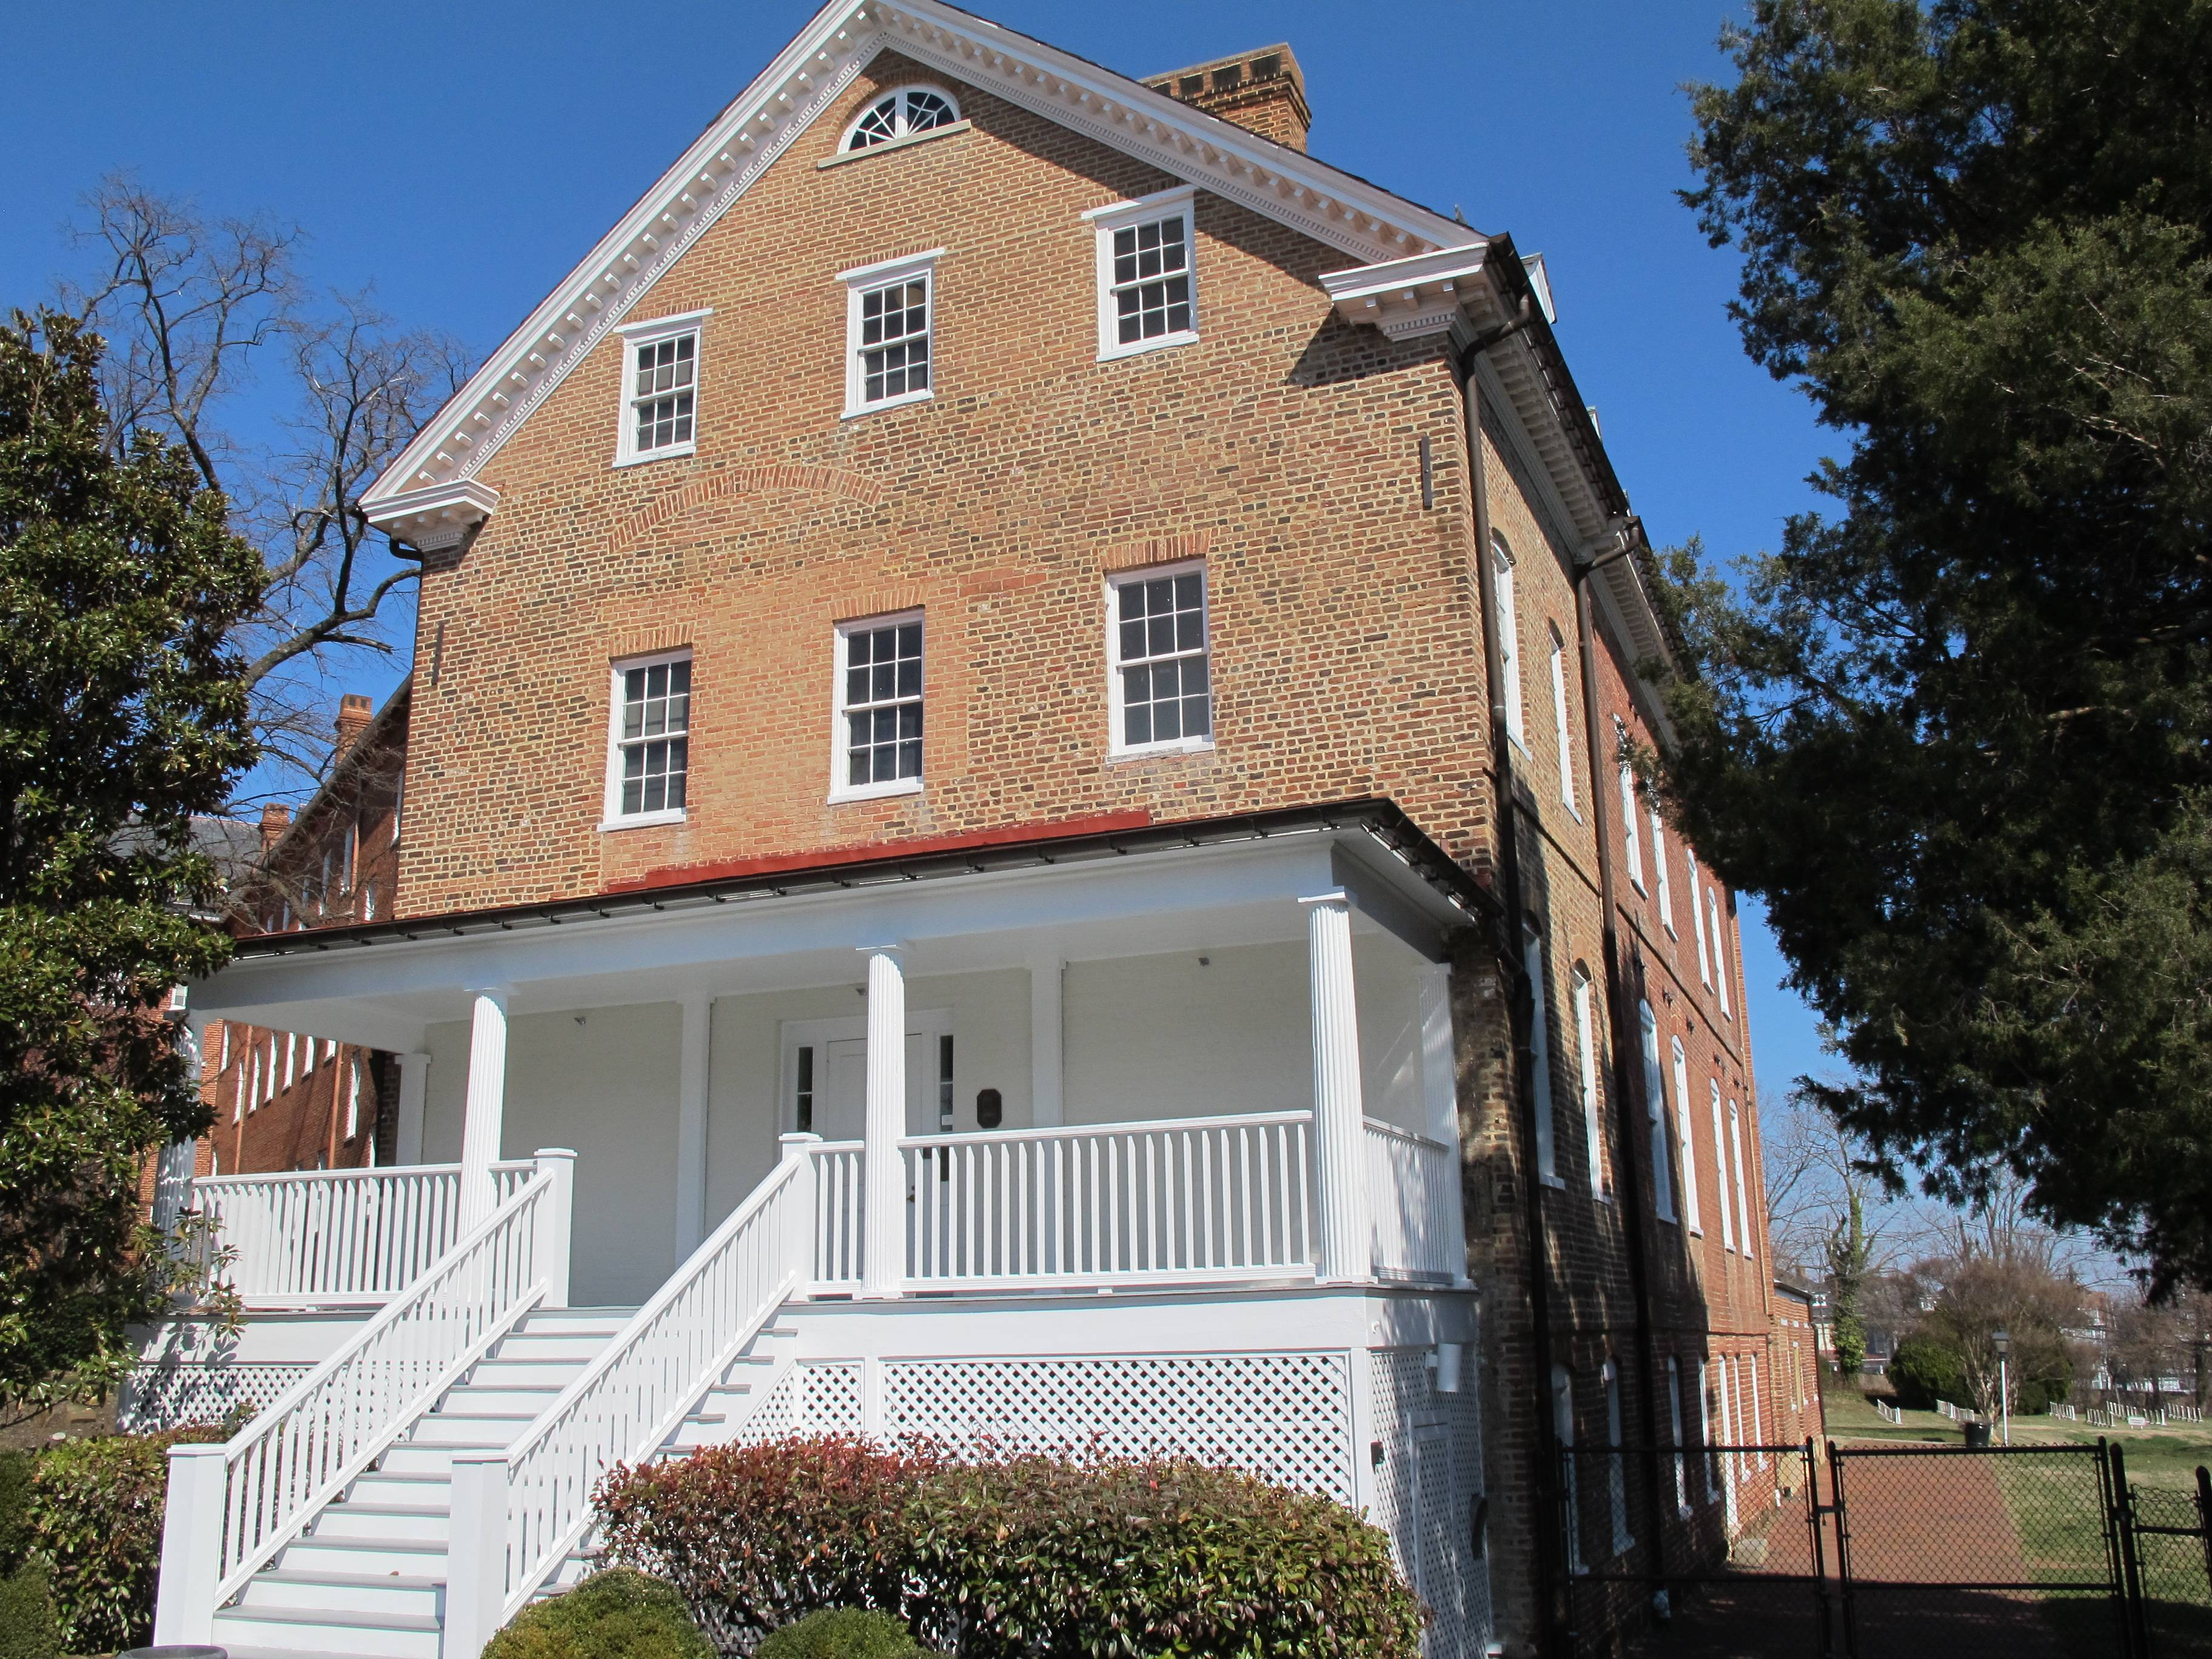 The home of Charles Carroll, the only Catholic signer of the Declaration of Independence, is open for free public tours for individuals and groups of up to six people on weekends from June through October. The home also has one of the most intact 18th-century garden designs in the Chesapeake region.